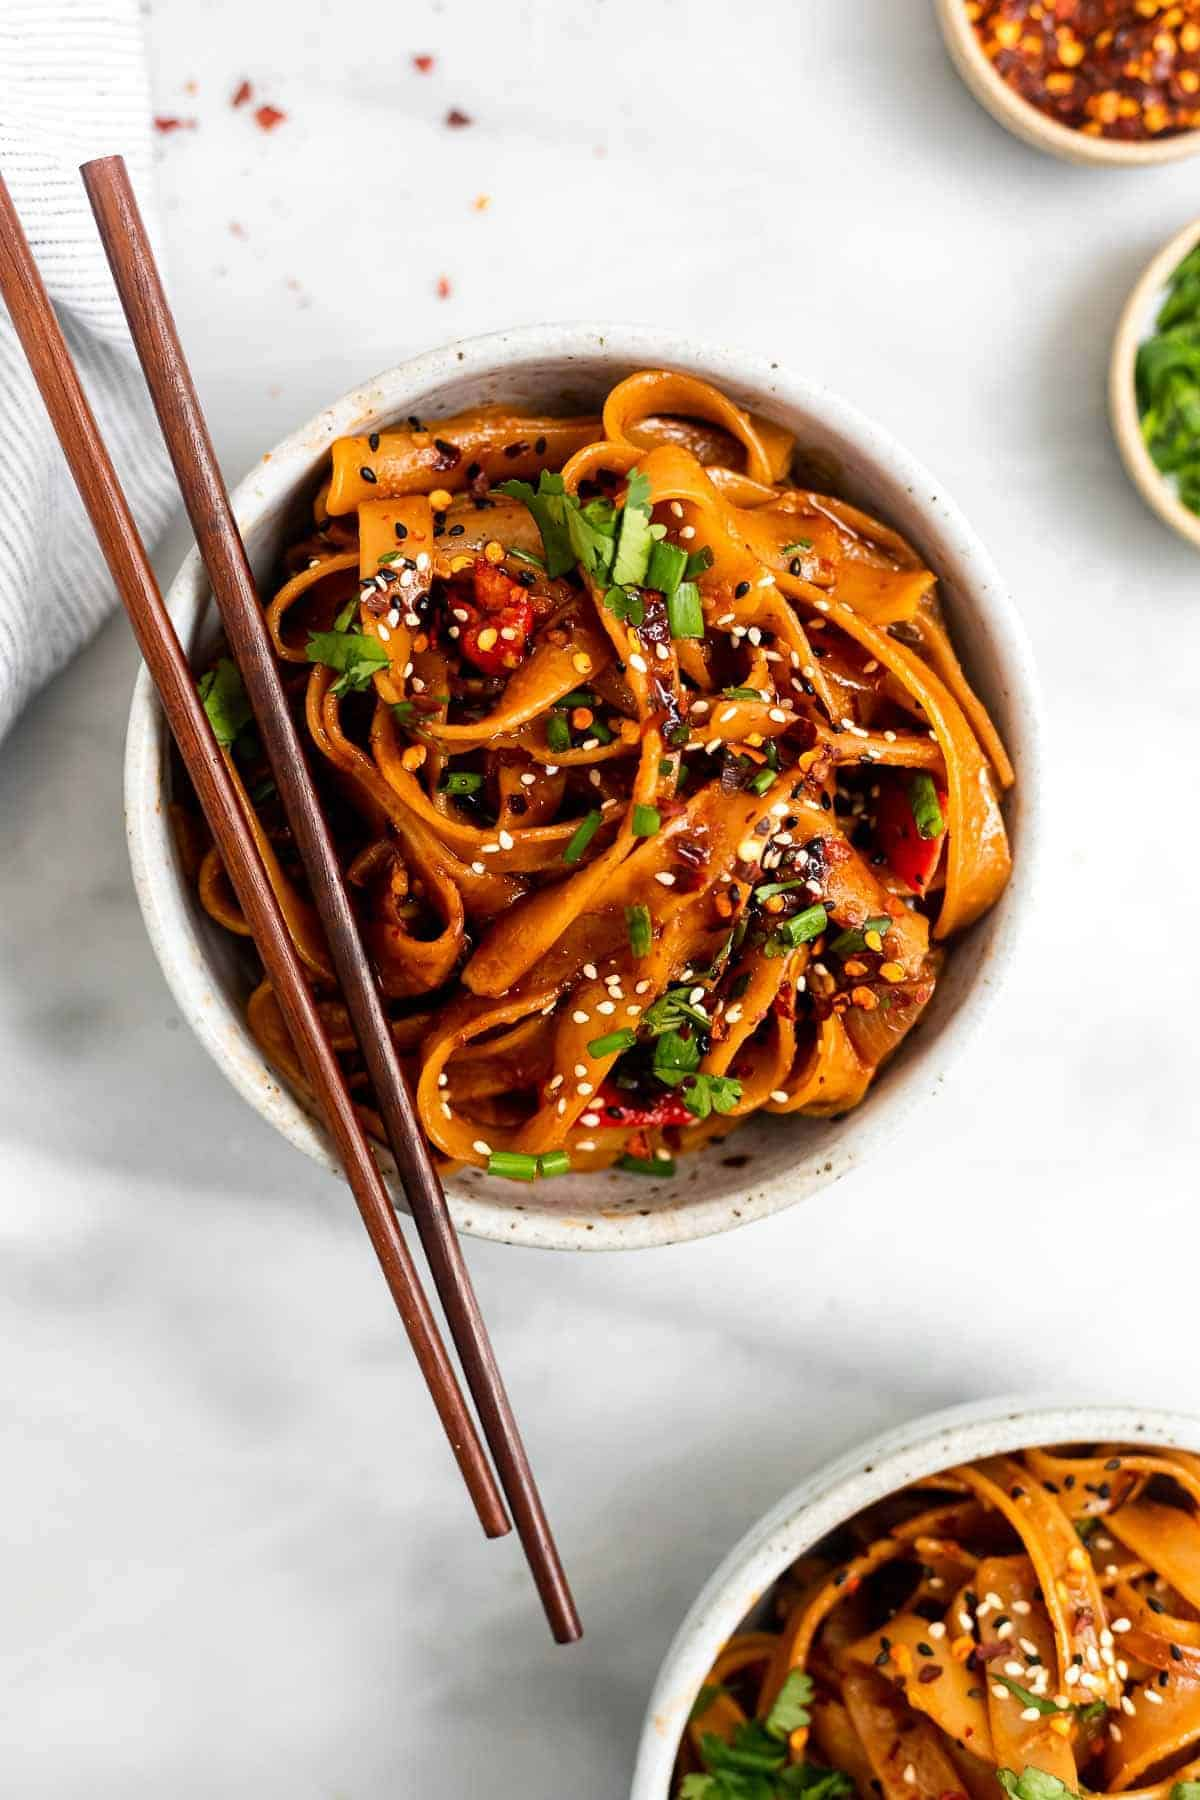 spicy chili garlic noodles in a bowl with chopsticks